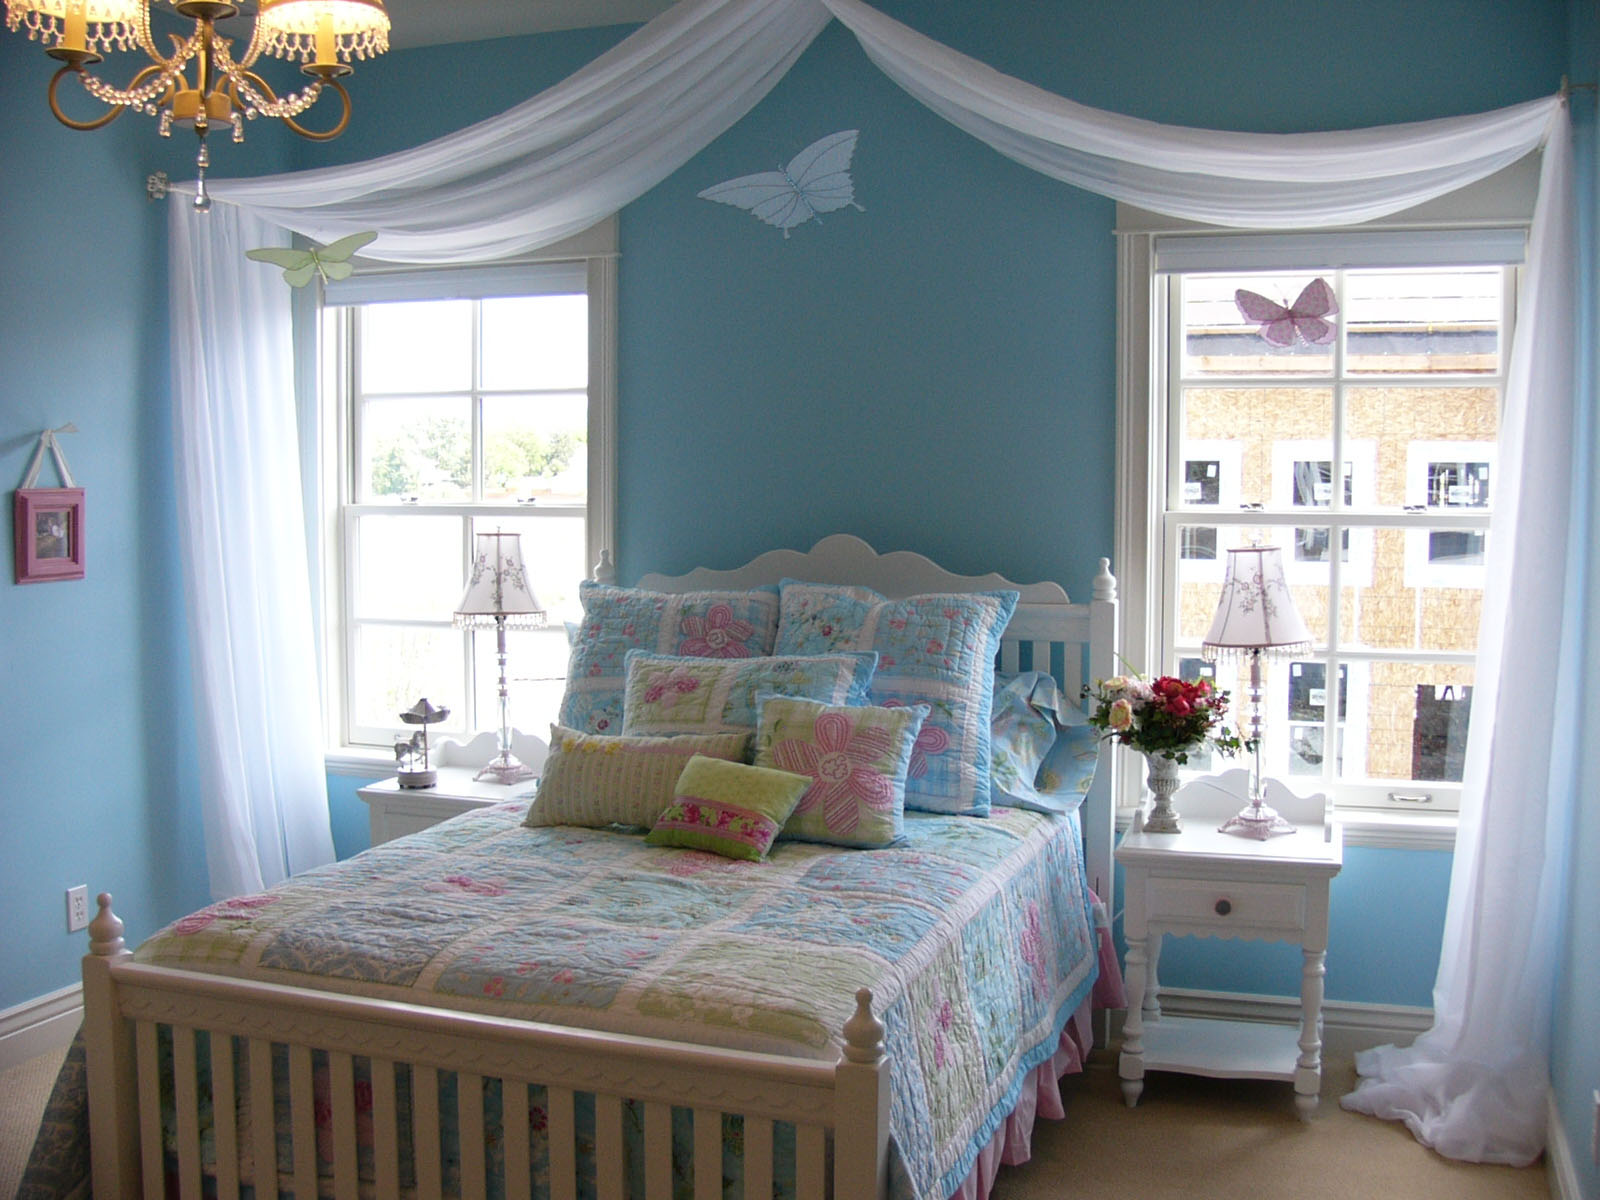 37 Unique and Super Colourful Bedroom Curtain Designs and ... on Bedroom Curtains Ideas  id=95428